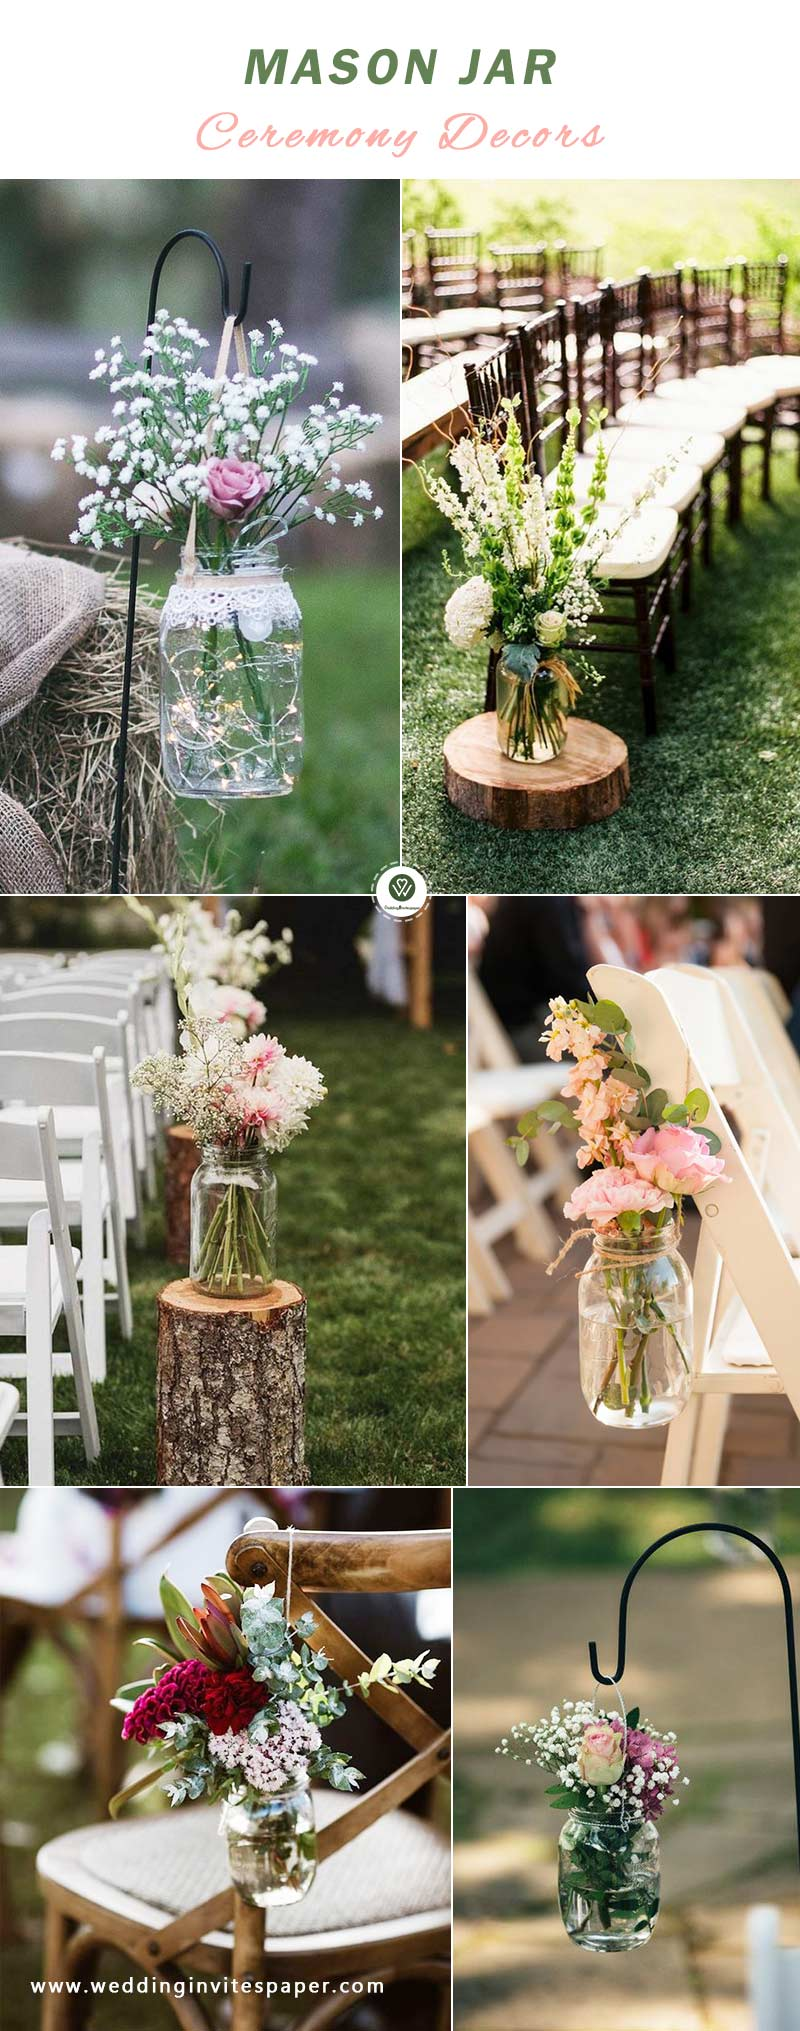 MASON-JAR-Ceremony-Decors.1.jpg